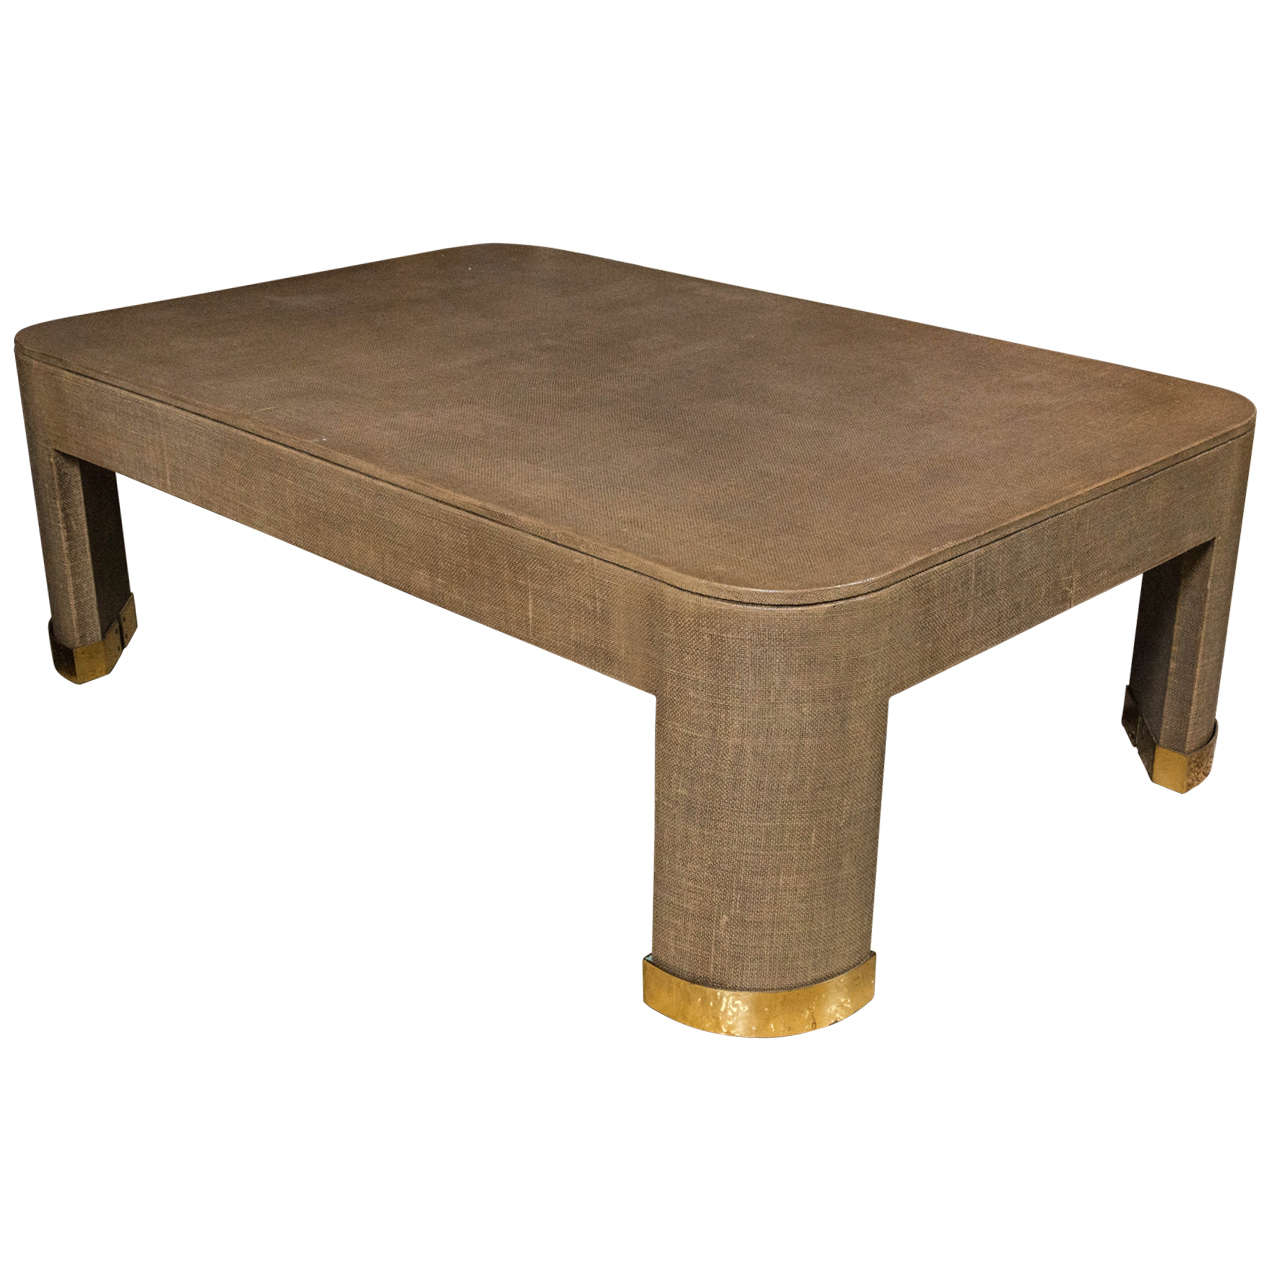 Karl springer style linen coffee table for sale at 1stdibs Vogue coffee table